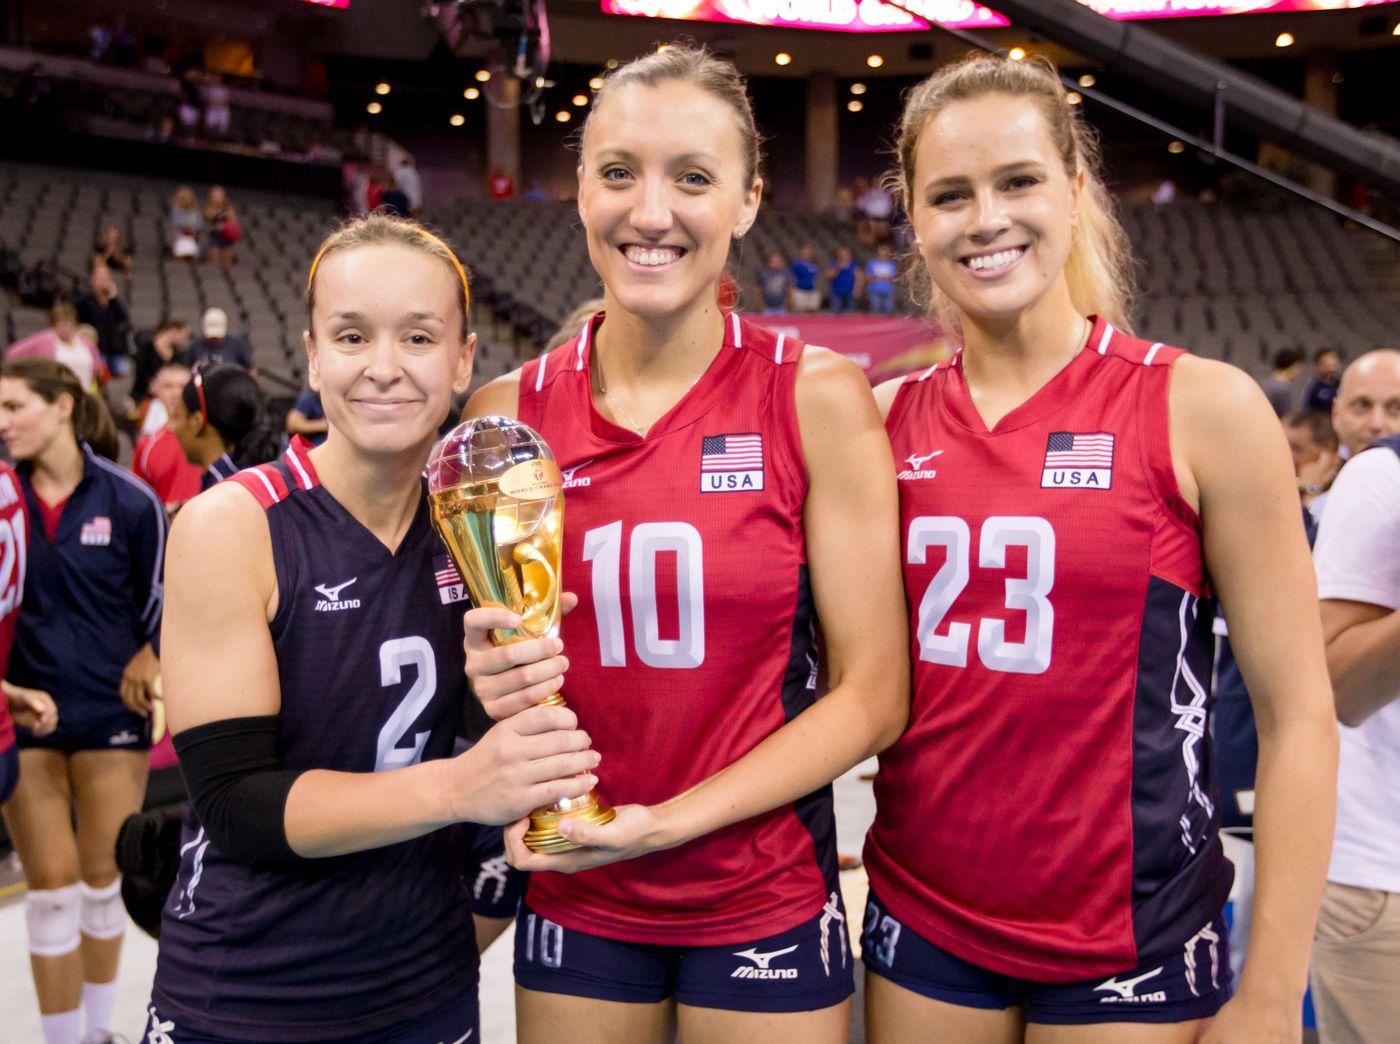 07 26 2015 Fivb World Grand Prix Finals Last Day Female Volleyball Players Usa Volleyball Team Usa